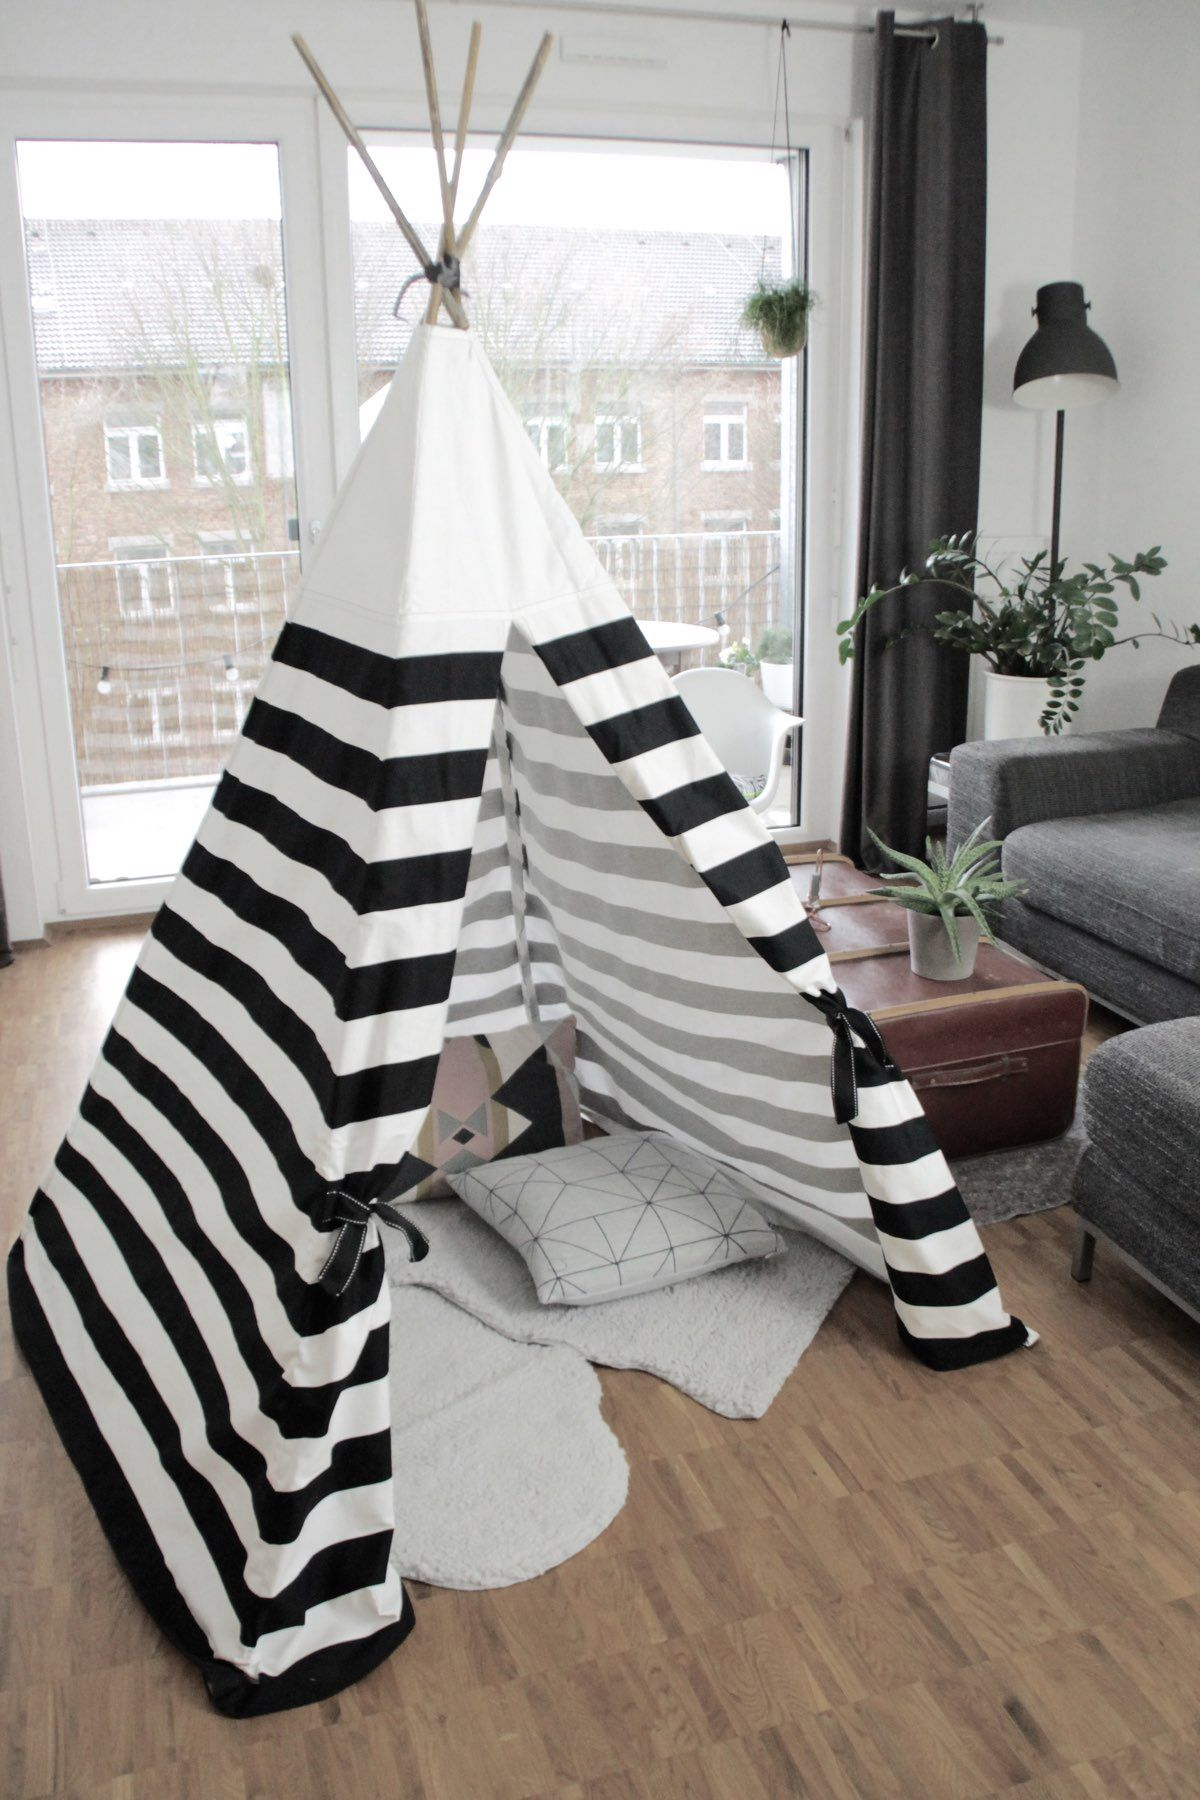 die besten 25 tipi kinderzimmer ideen auf pinterest zelt kinderzimmer lichterkette. Black Bedroom Furniture Sets. Home Design Ideas